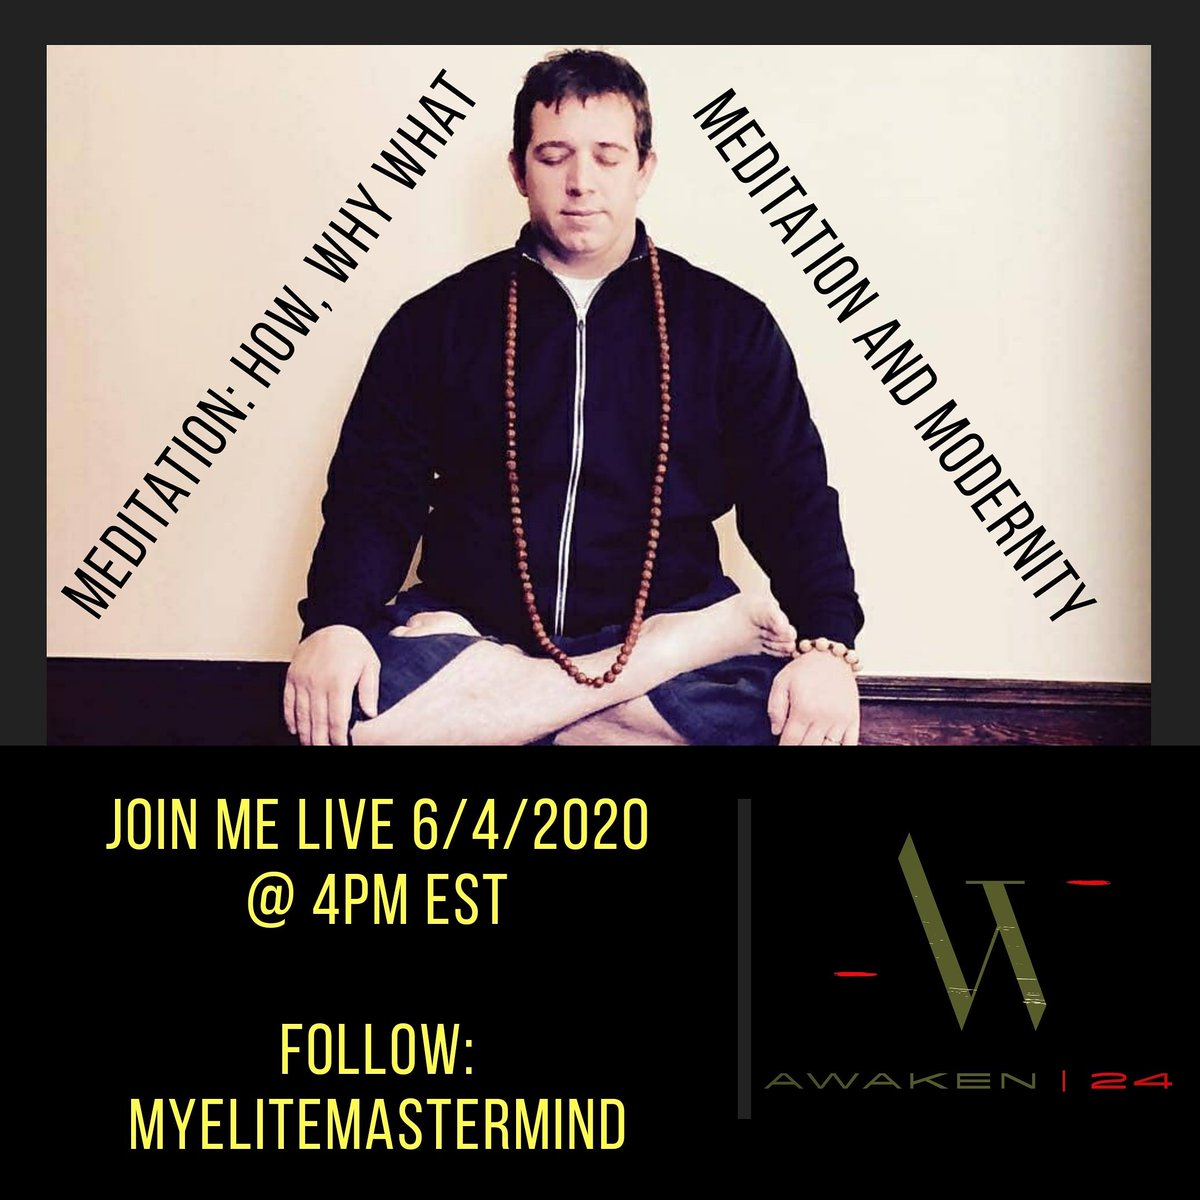 Join me on 6/4/2020 on @instagram for an amazing , in depth talk on #Meditation and Modernity on @MyEliteMastermind. My #Elite #Mastermind is an amazing source of #growth minded content that is gauranteed to bring you #value in both #business and #personal life.pic.twitter.com/z5E9WIZU13